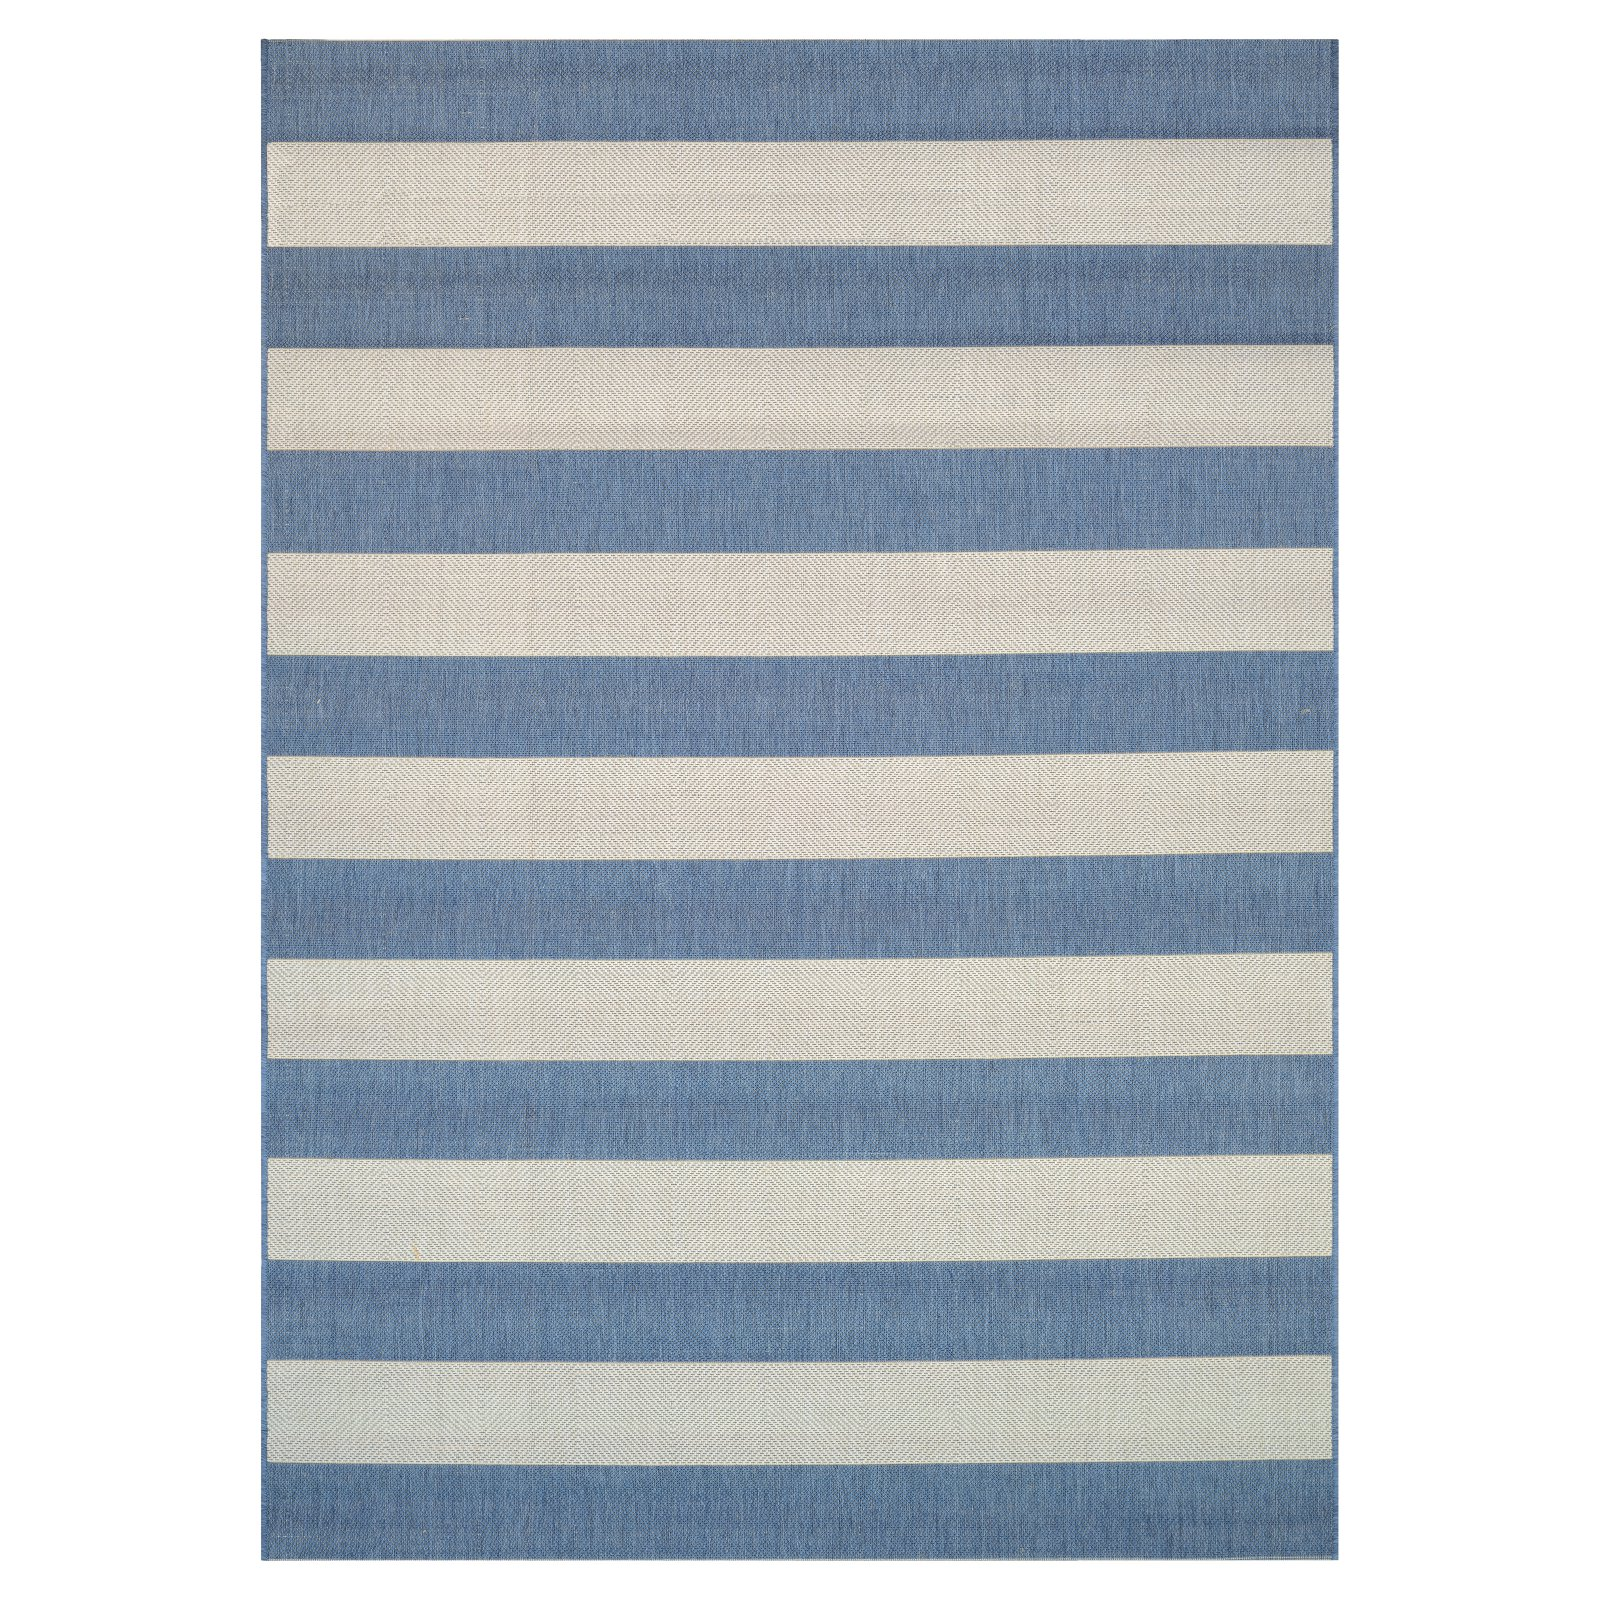 Couristan Afuera Yacht Club Indoor / Outdoor Area Rug